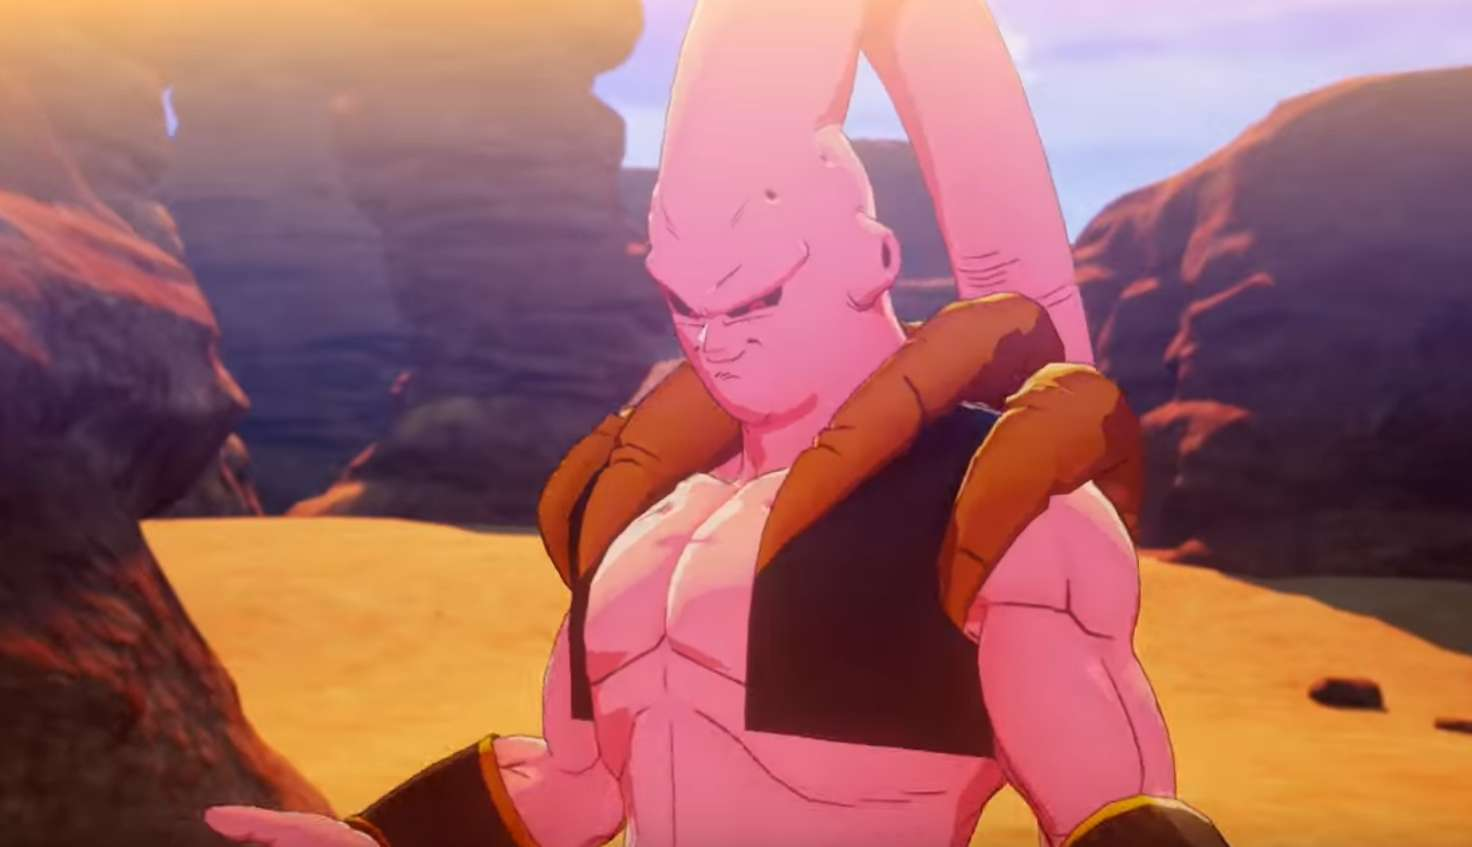 Dragon Ball Z Kakarot Releases New Trailer Hyping The Majin Buu Arc Of The Upcoming Game's Storyline